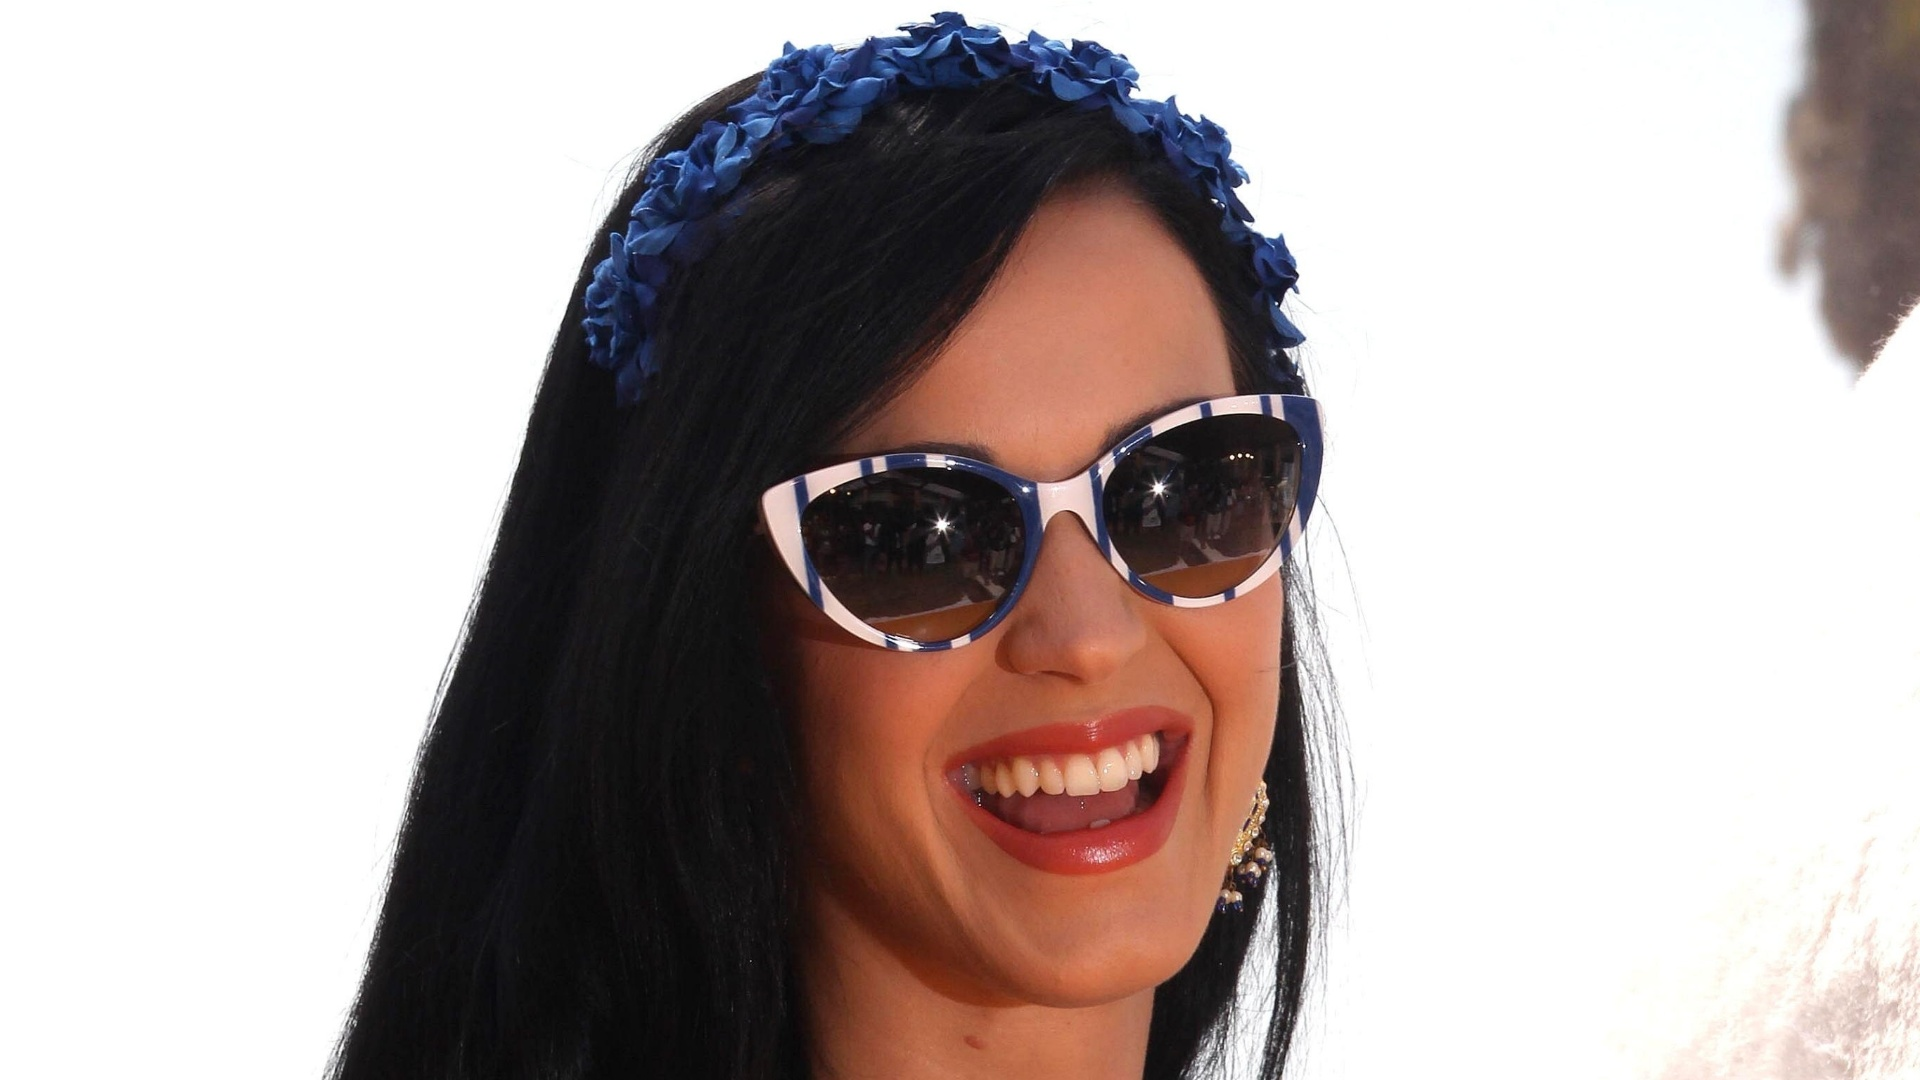 22.Abr.2013 - Katy Perry, durante evento promocional do filme